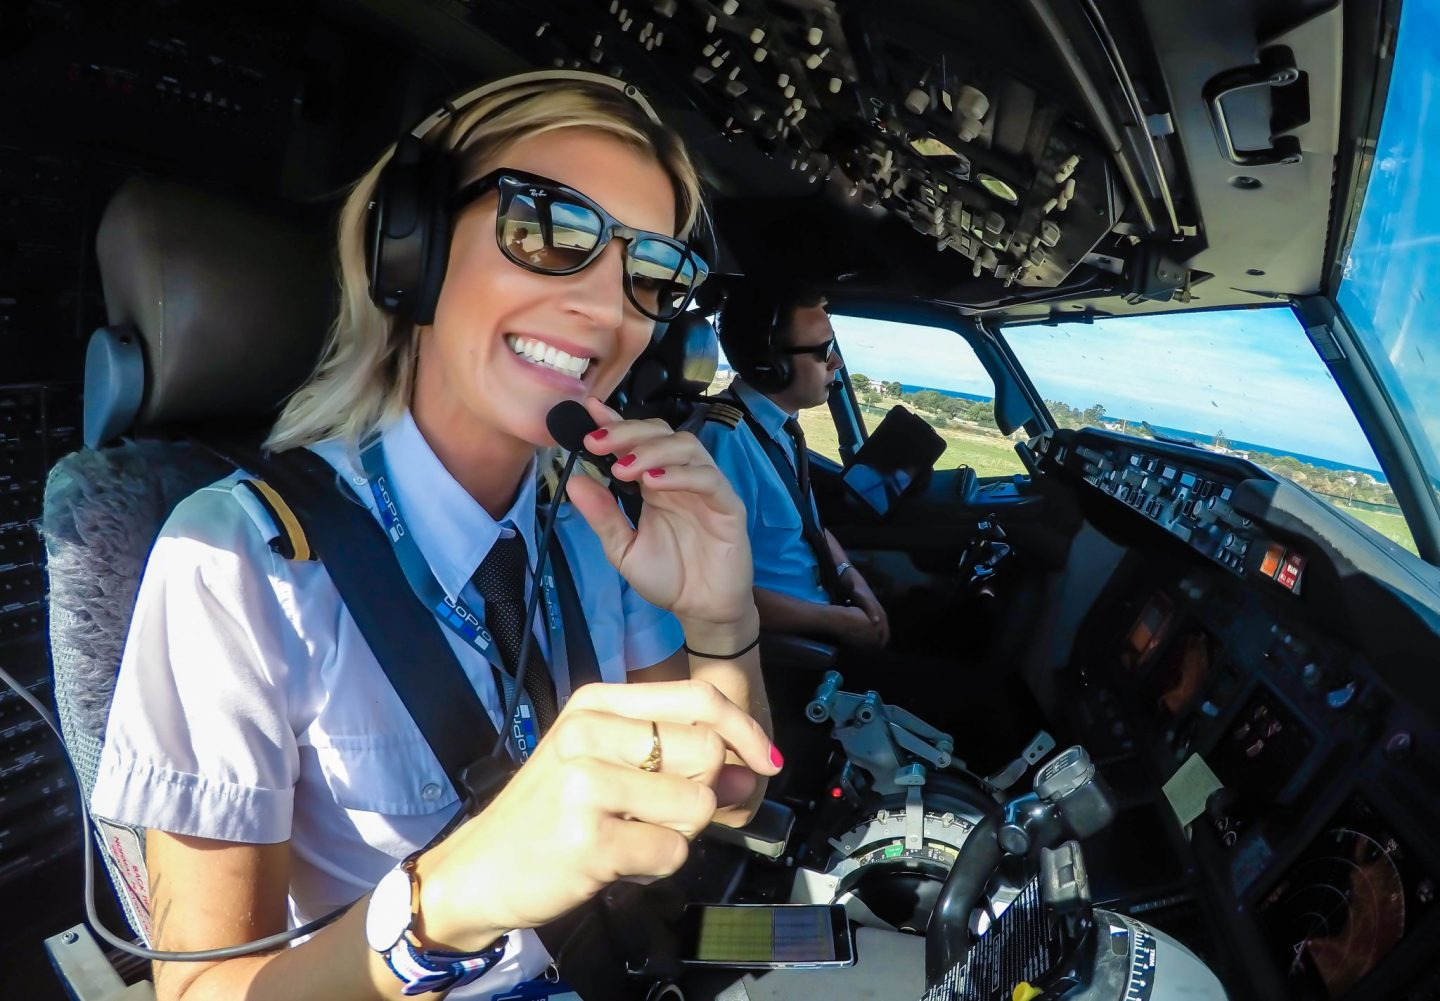 Christian airline pilot and online dating